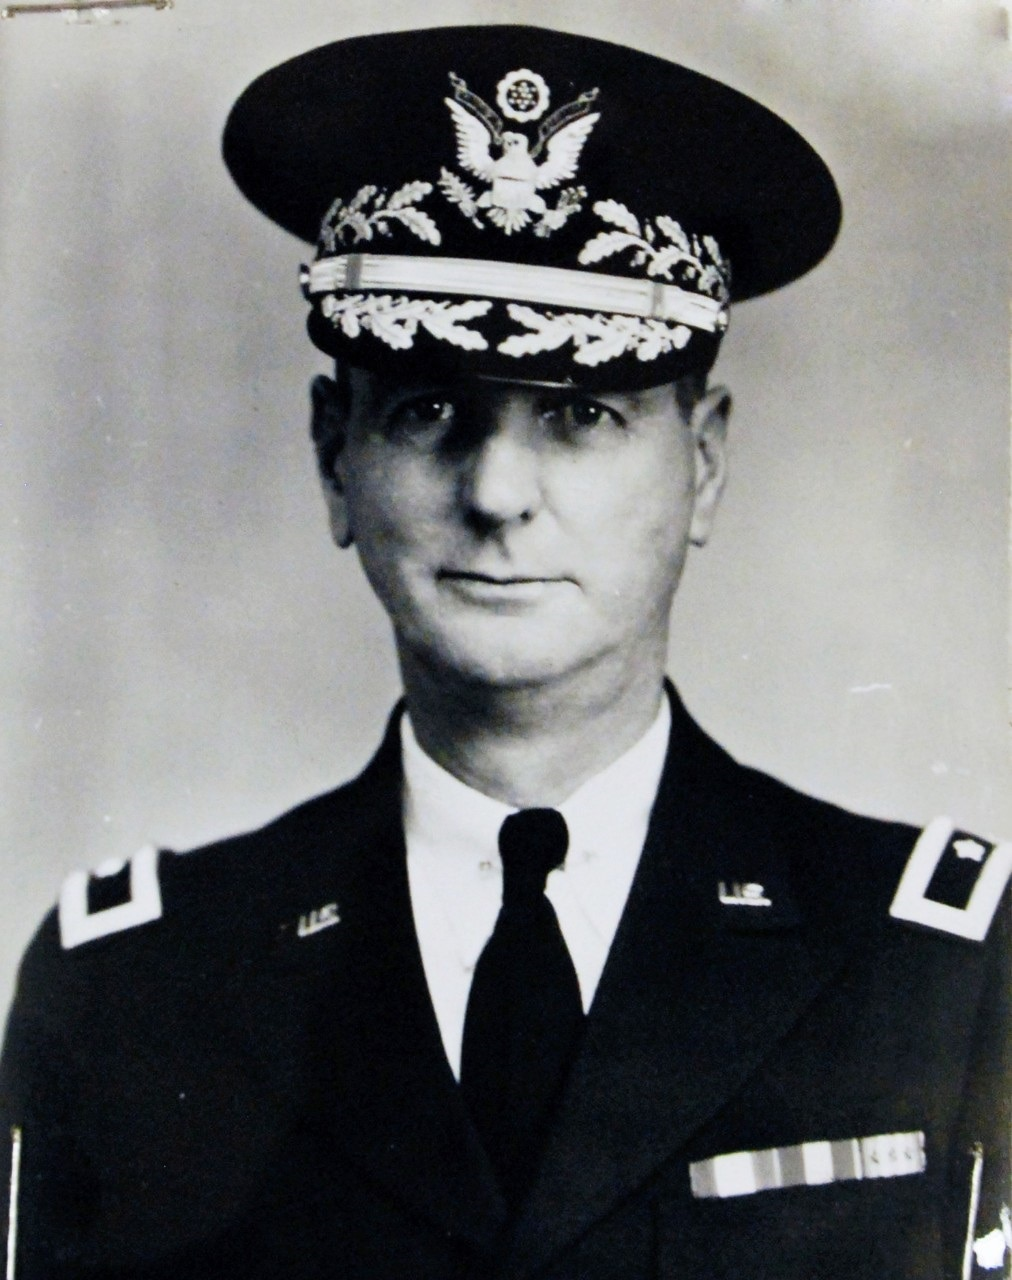 A soldier poses for a photo wearing his dress uniform and a decorated cap.